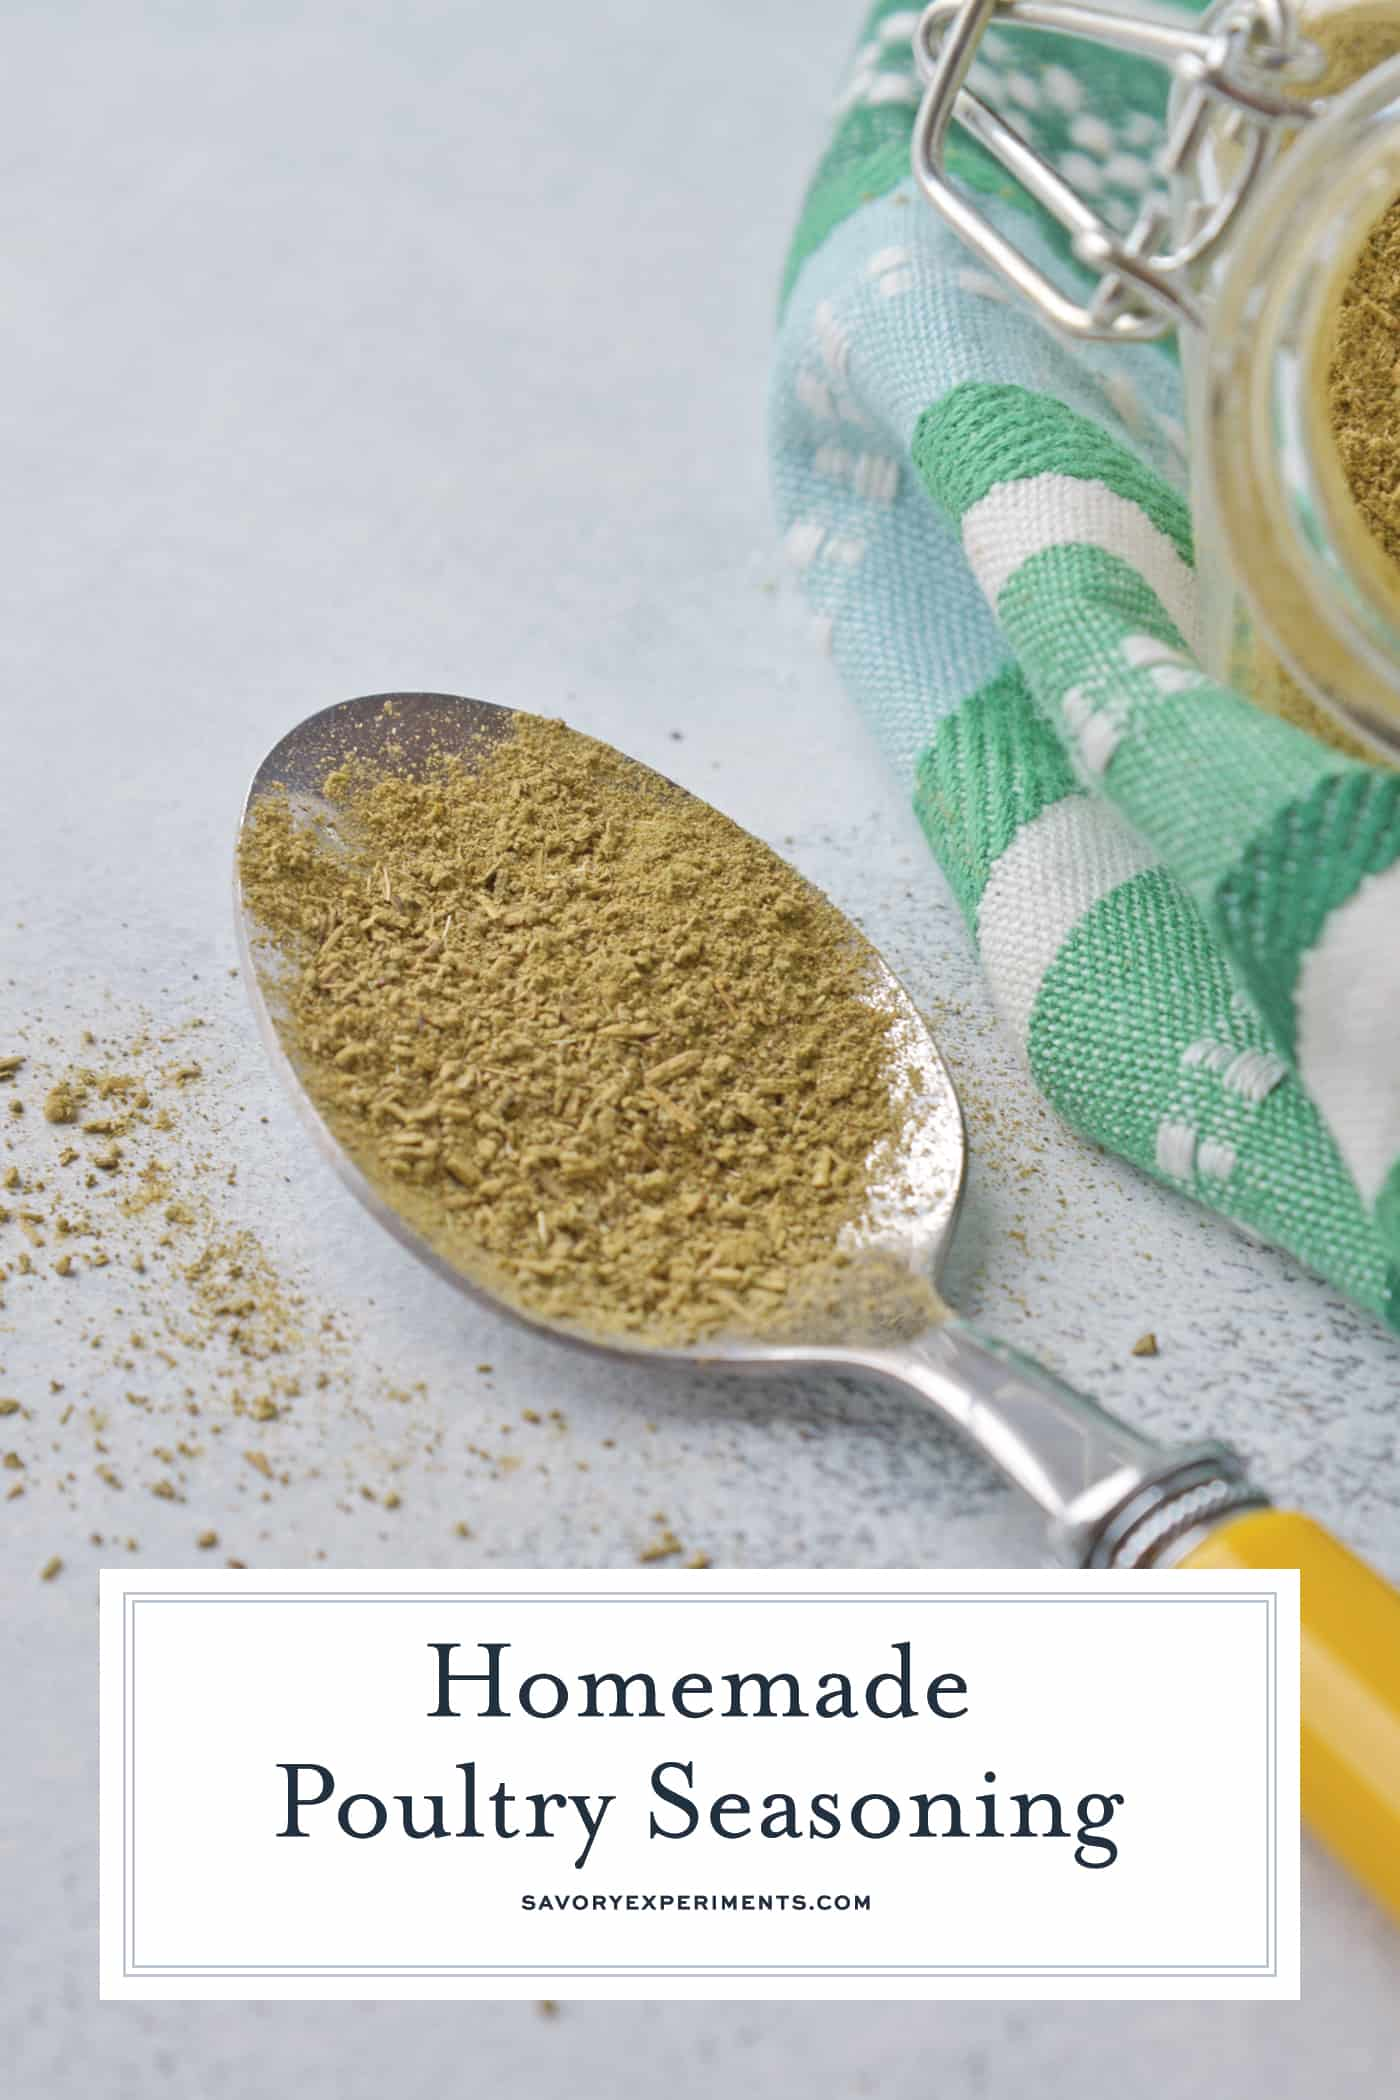 homemade poultry seasoning in a spoon